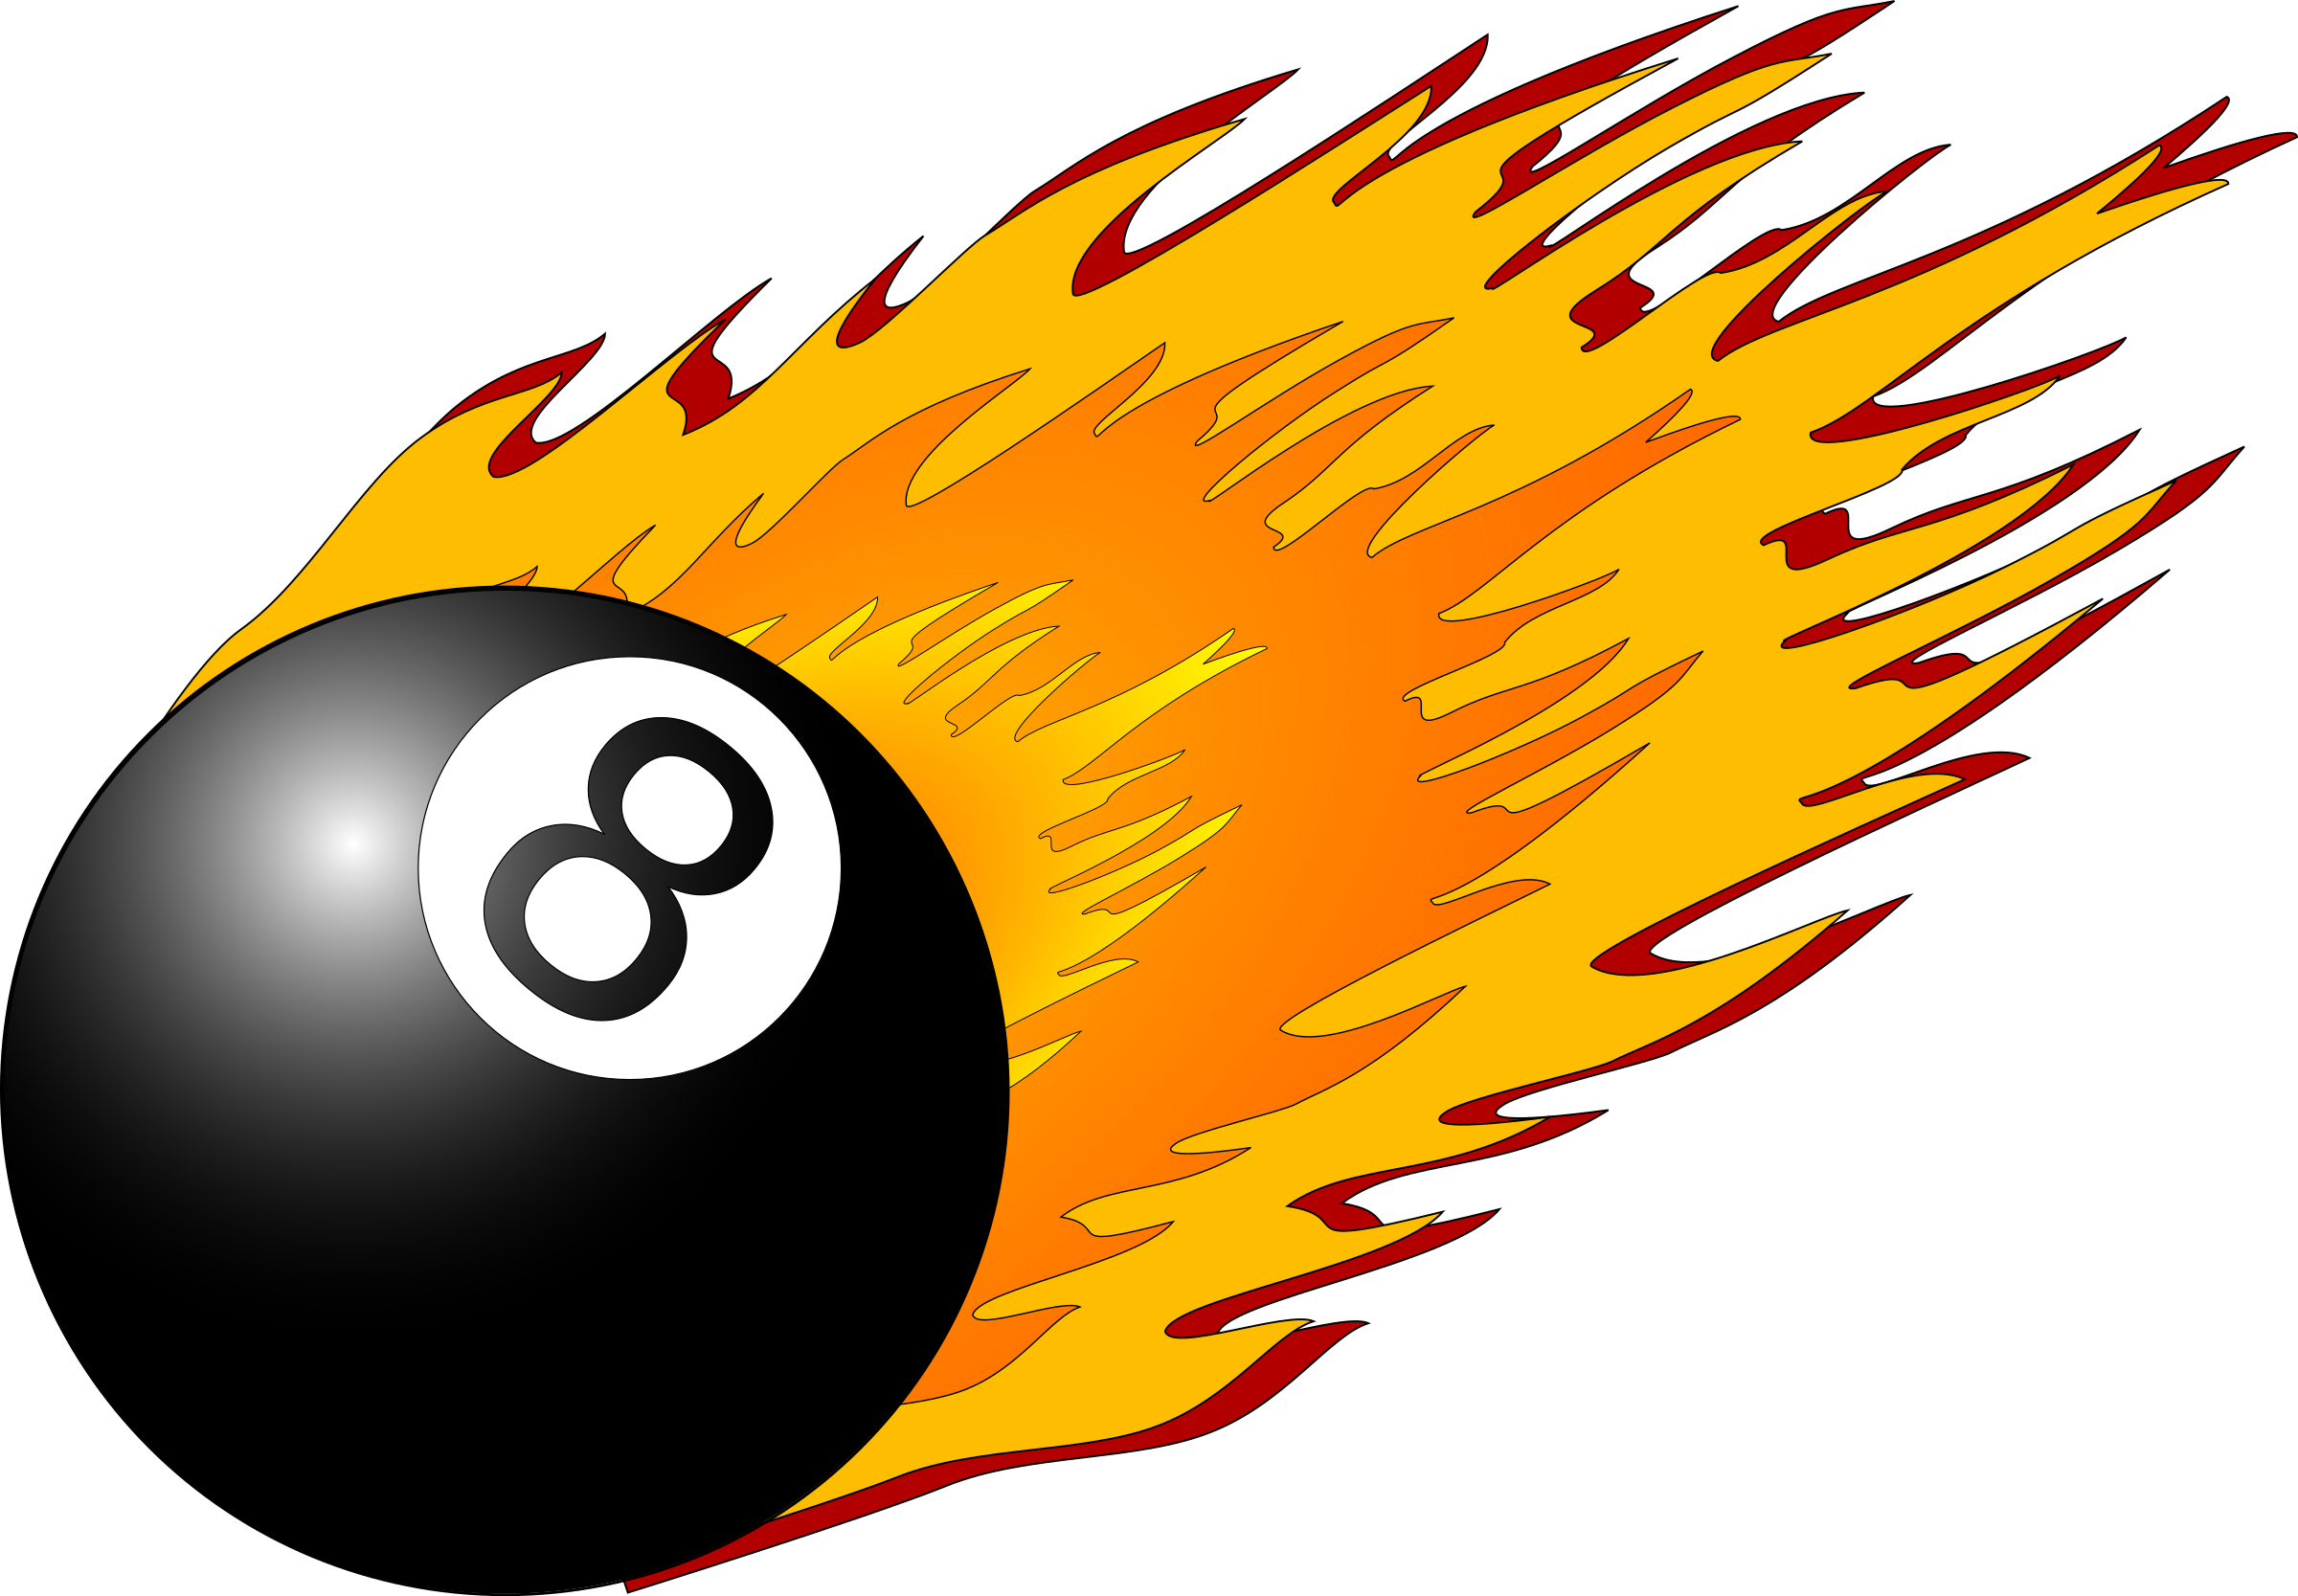 8ball with flames by drunken_duck